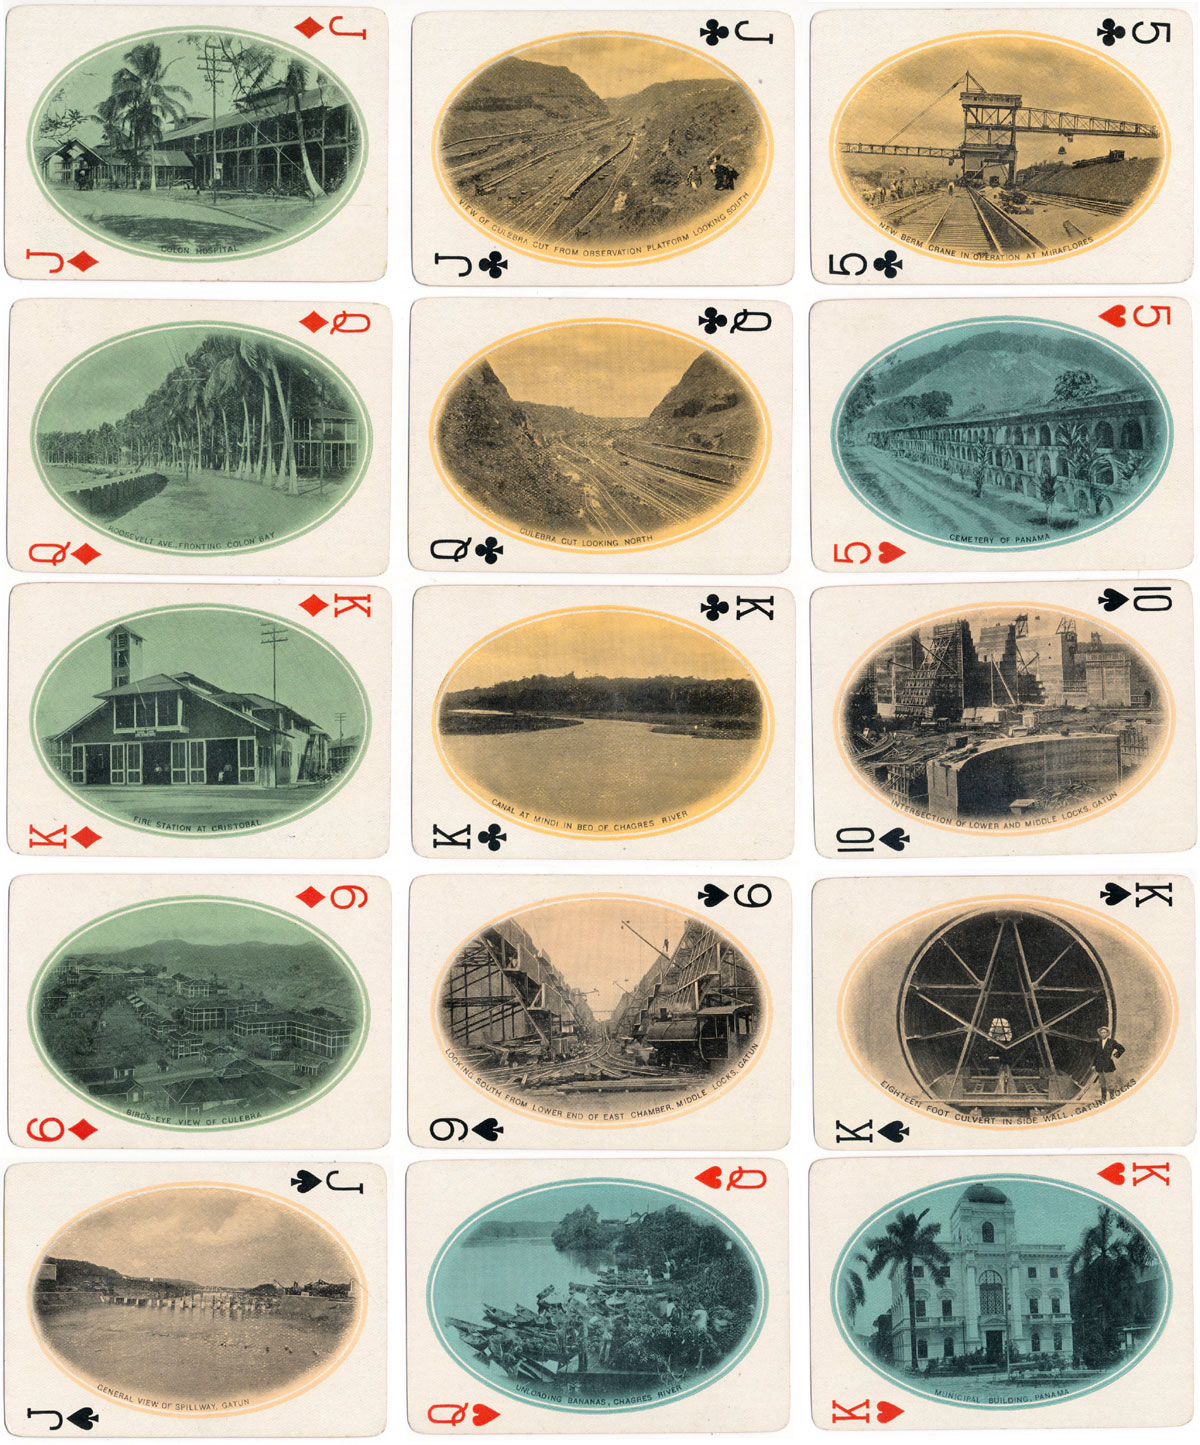 Panama Souvenir playing cards manufactured by USPCC, 6th Edition, produced in 1923